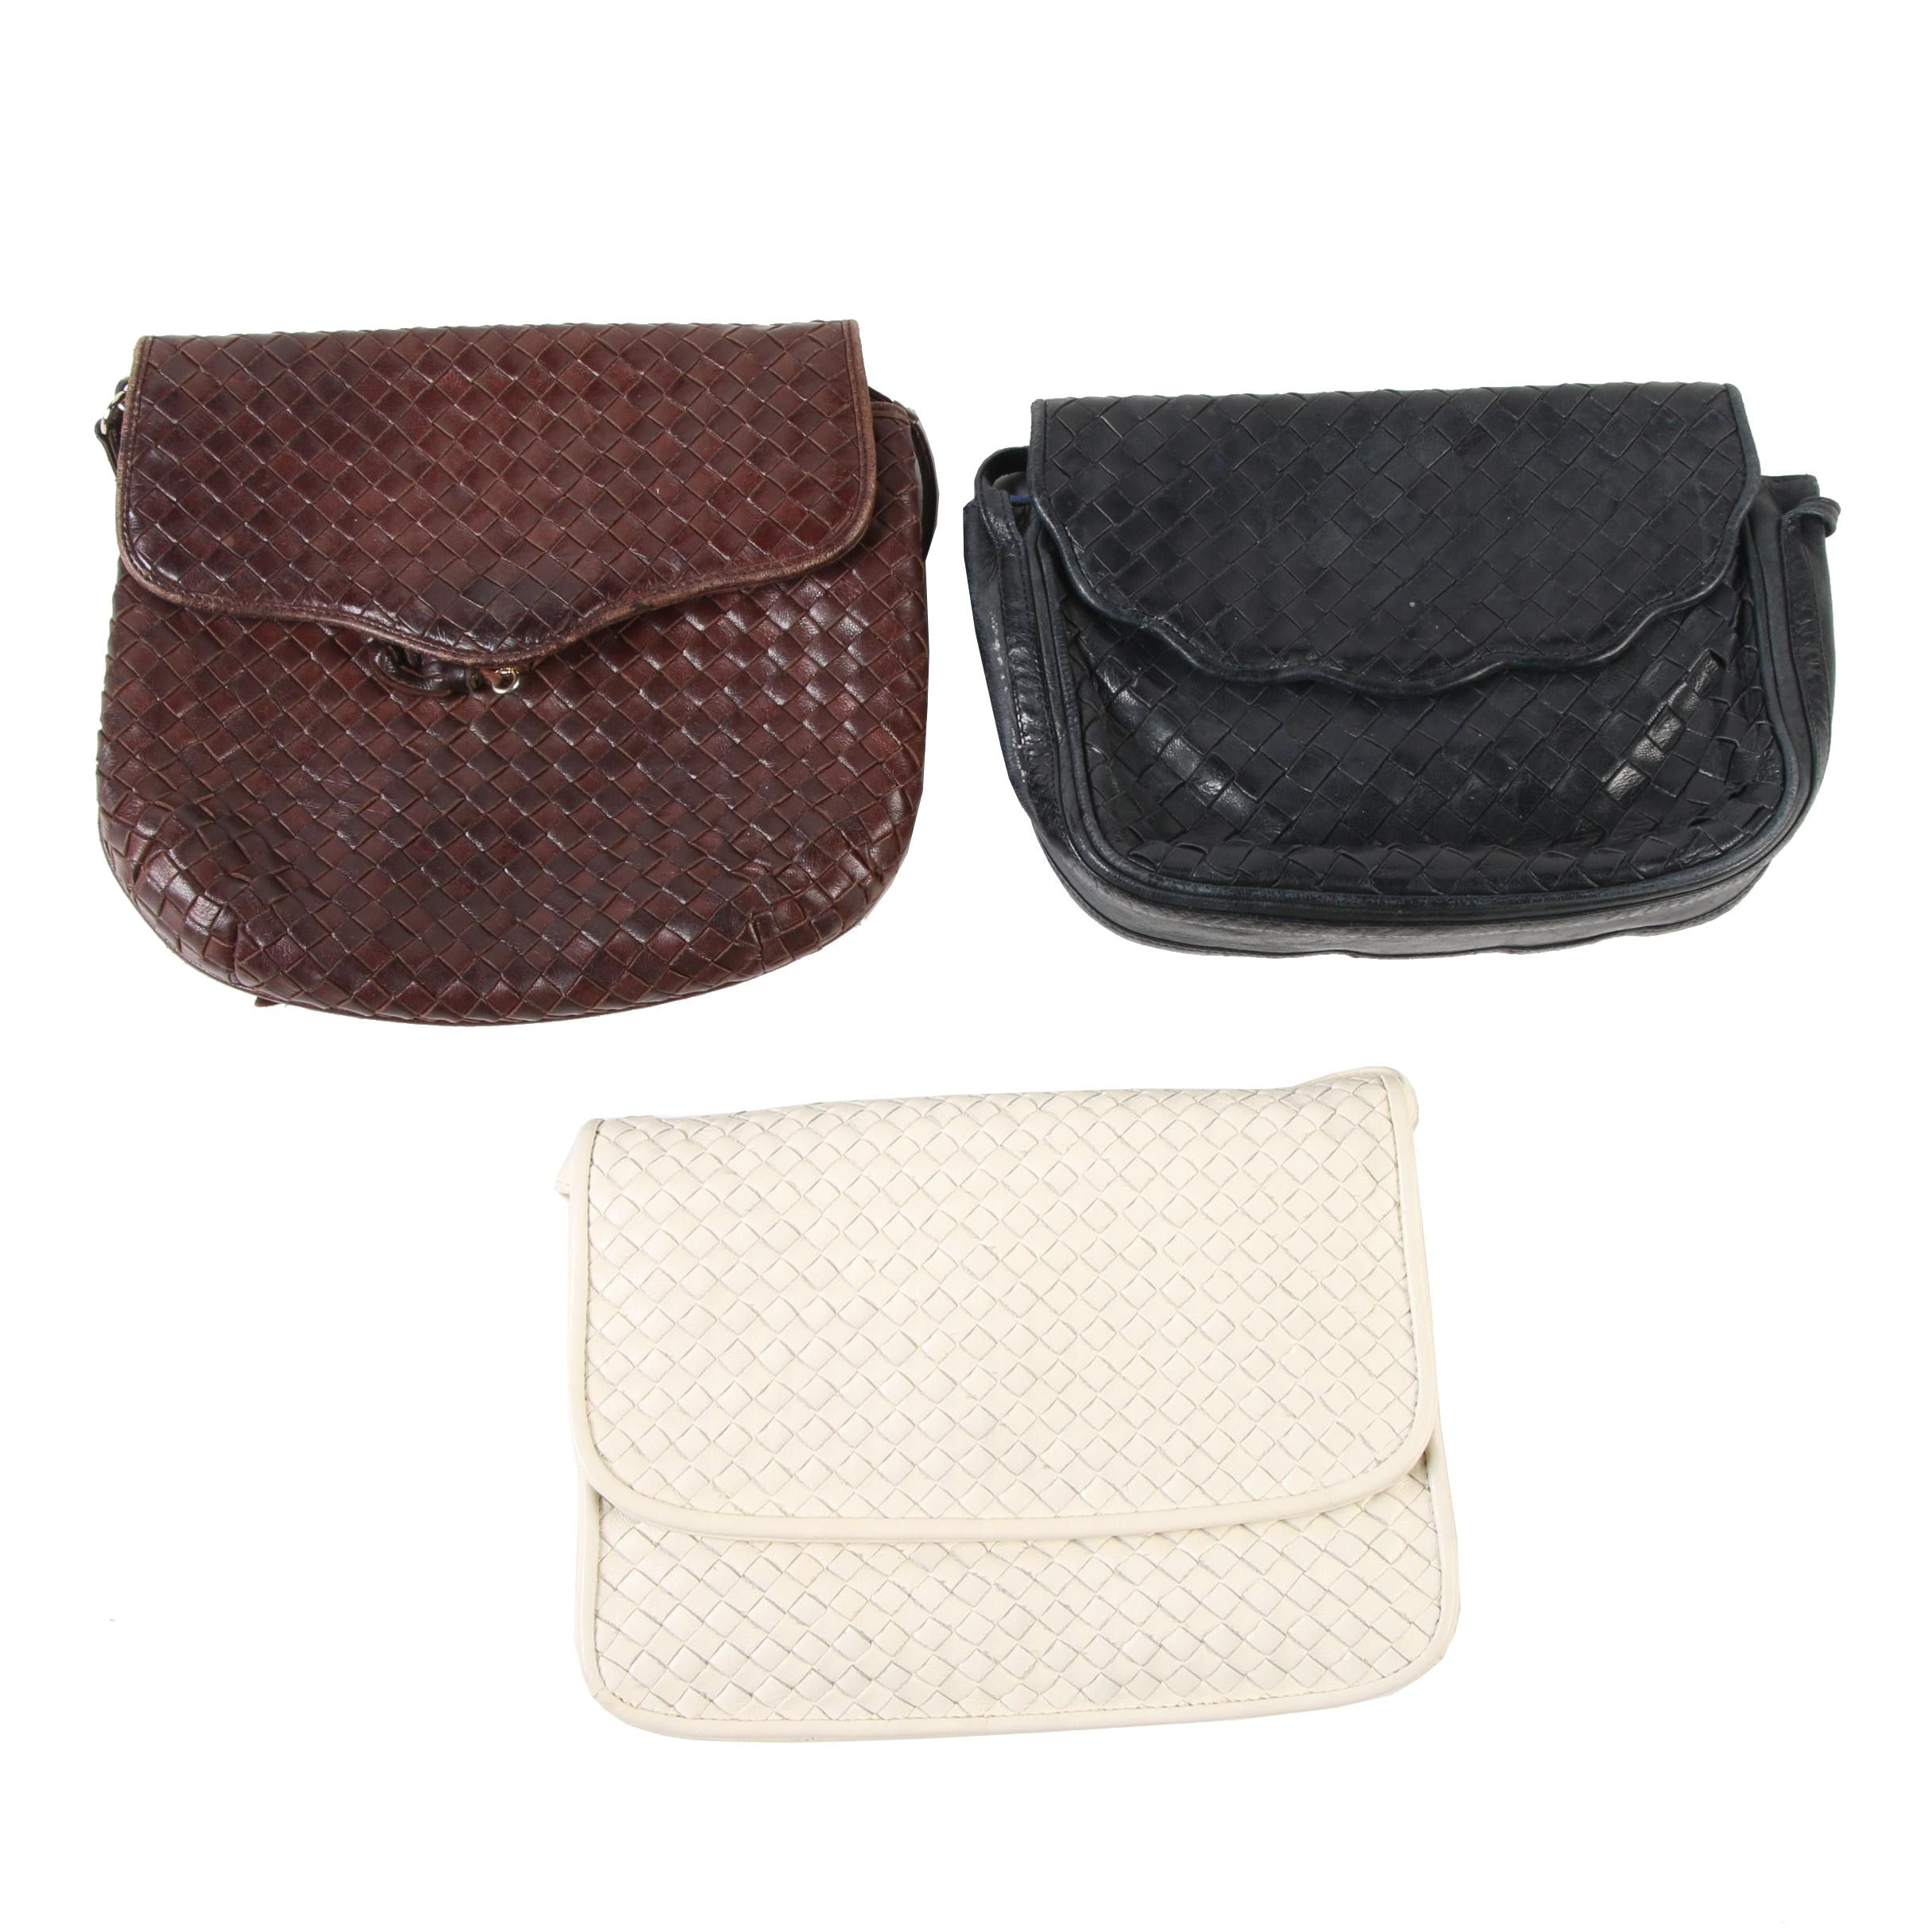 Woven Leather Shoulder Bags Including Brio!